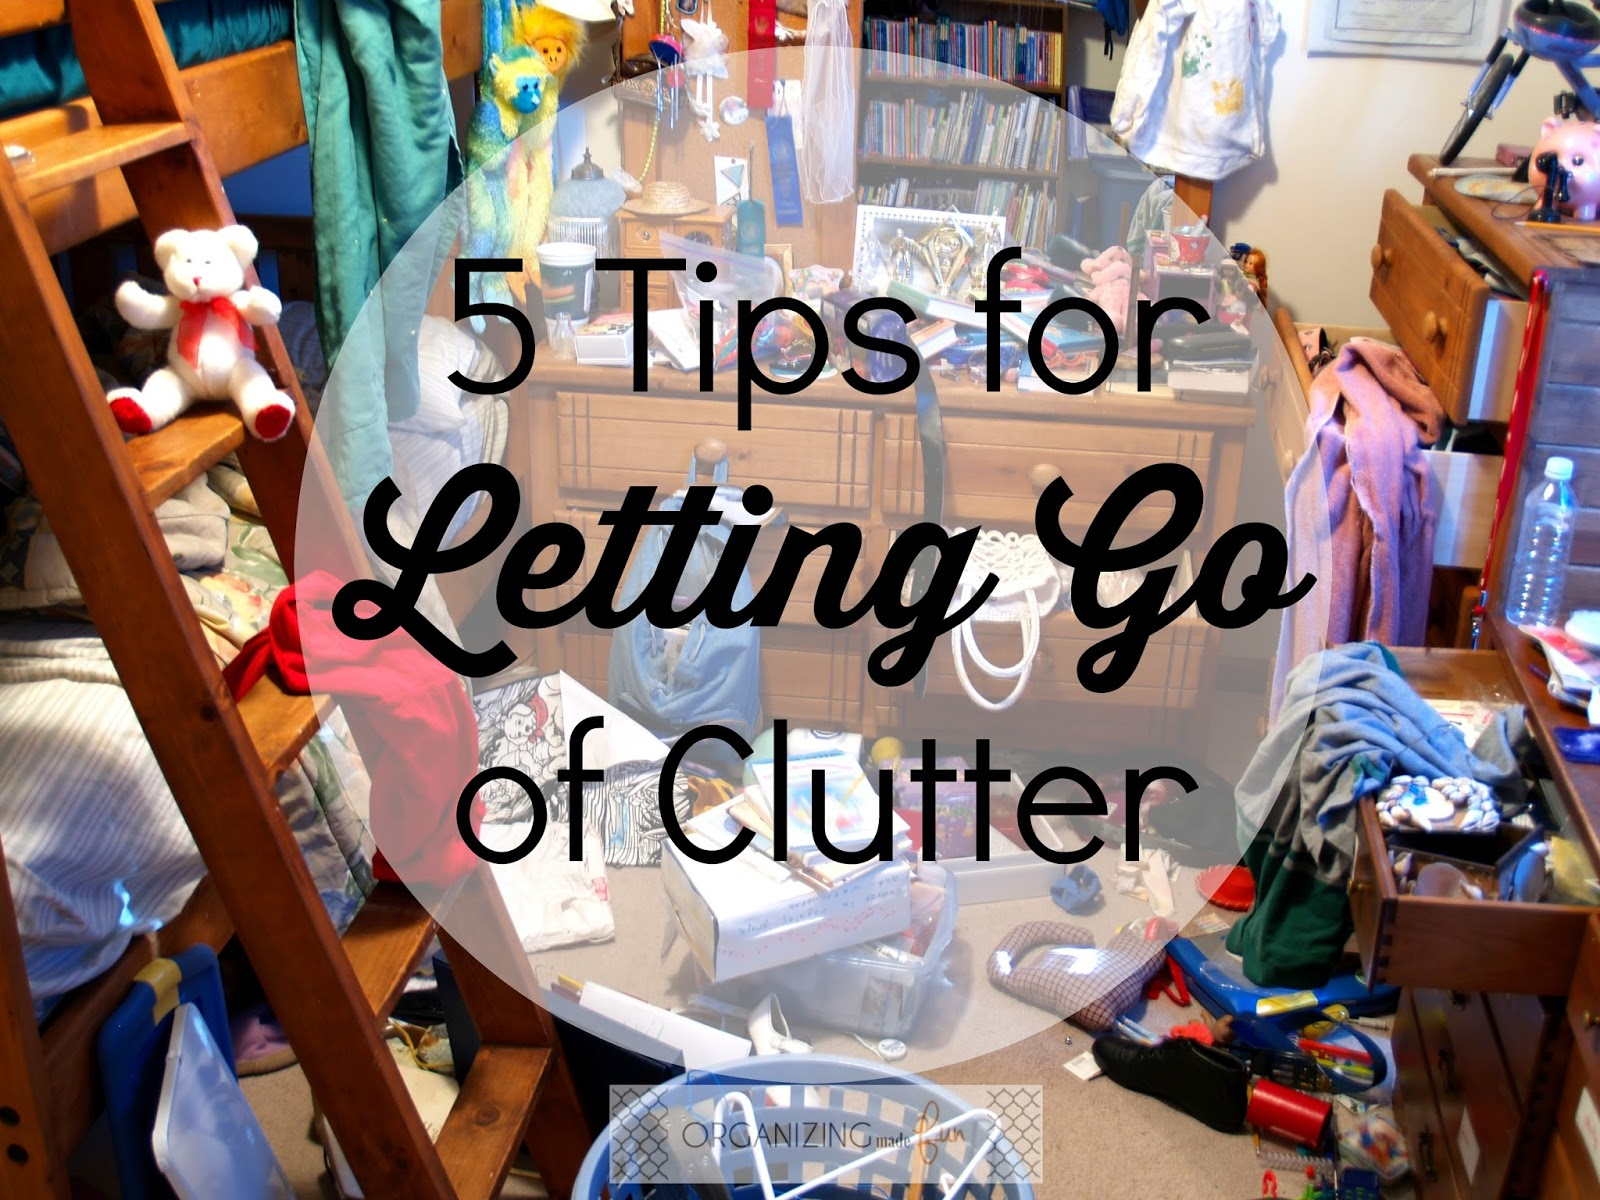 5 Tips For Letting Go Of Clutter Organizing Made Fun 5